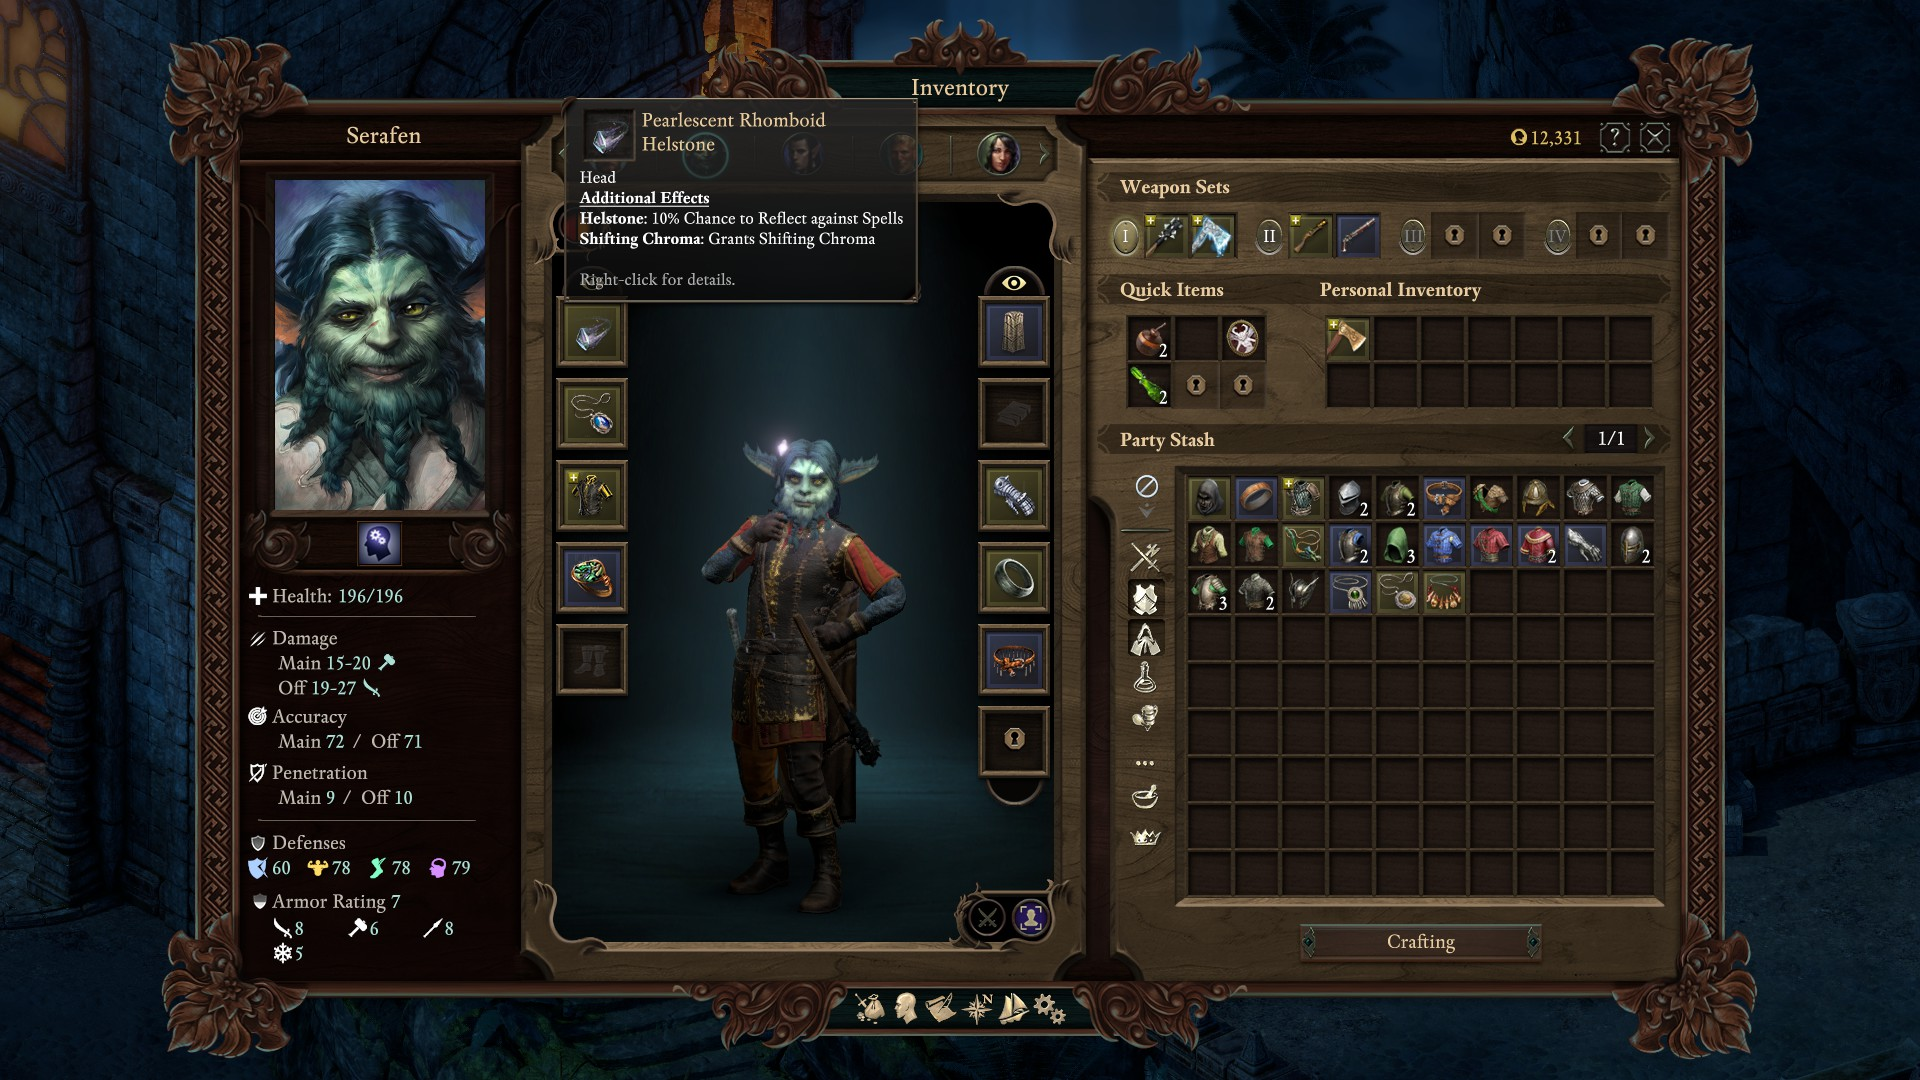 Serafen, Nightmare of Deadfire (Witch King) | Leveling